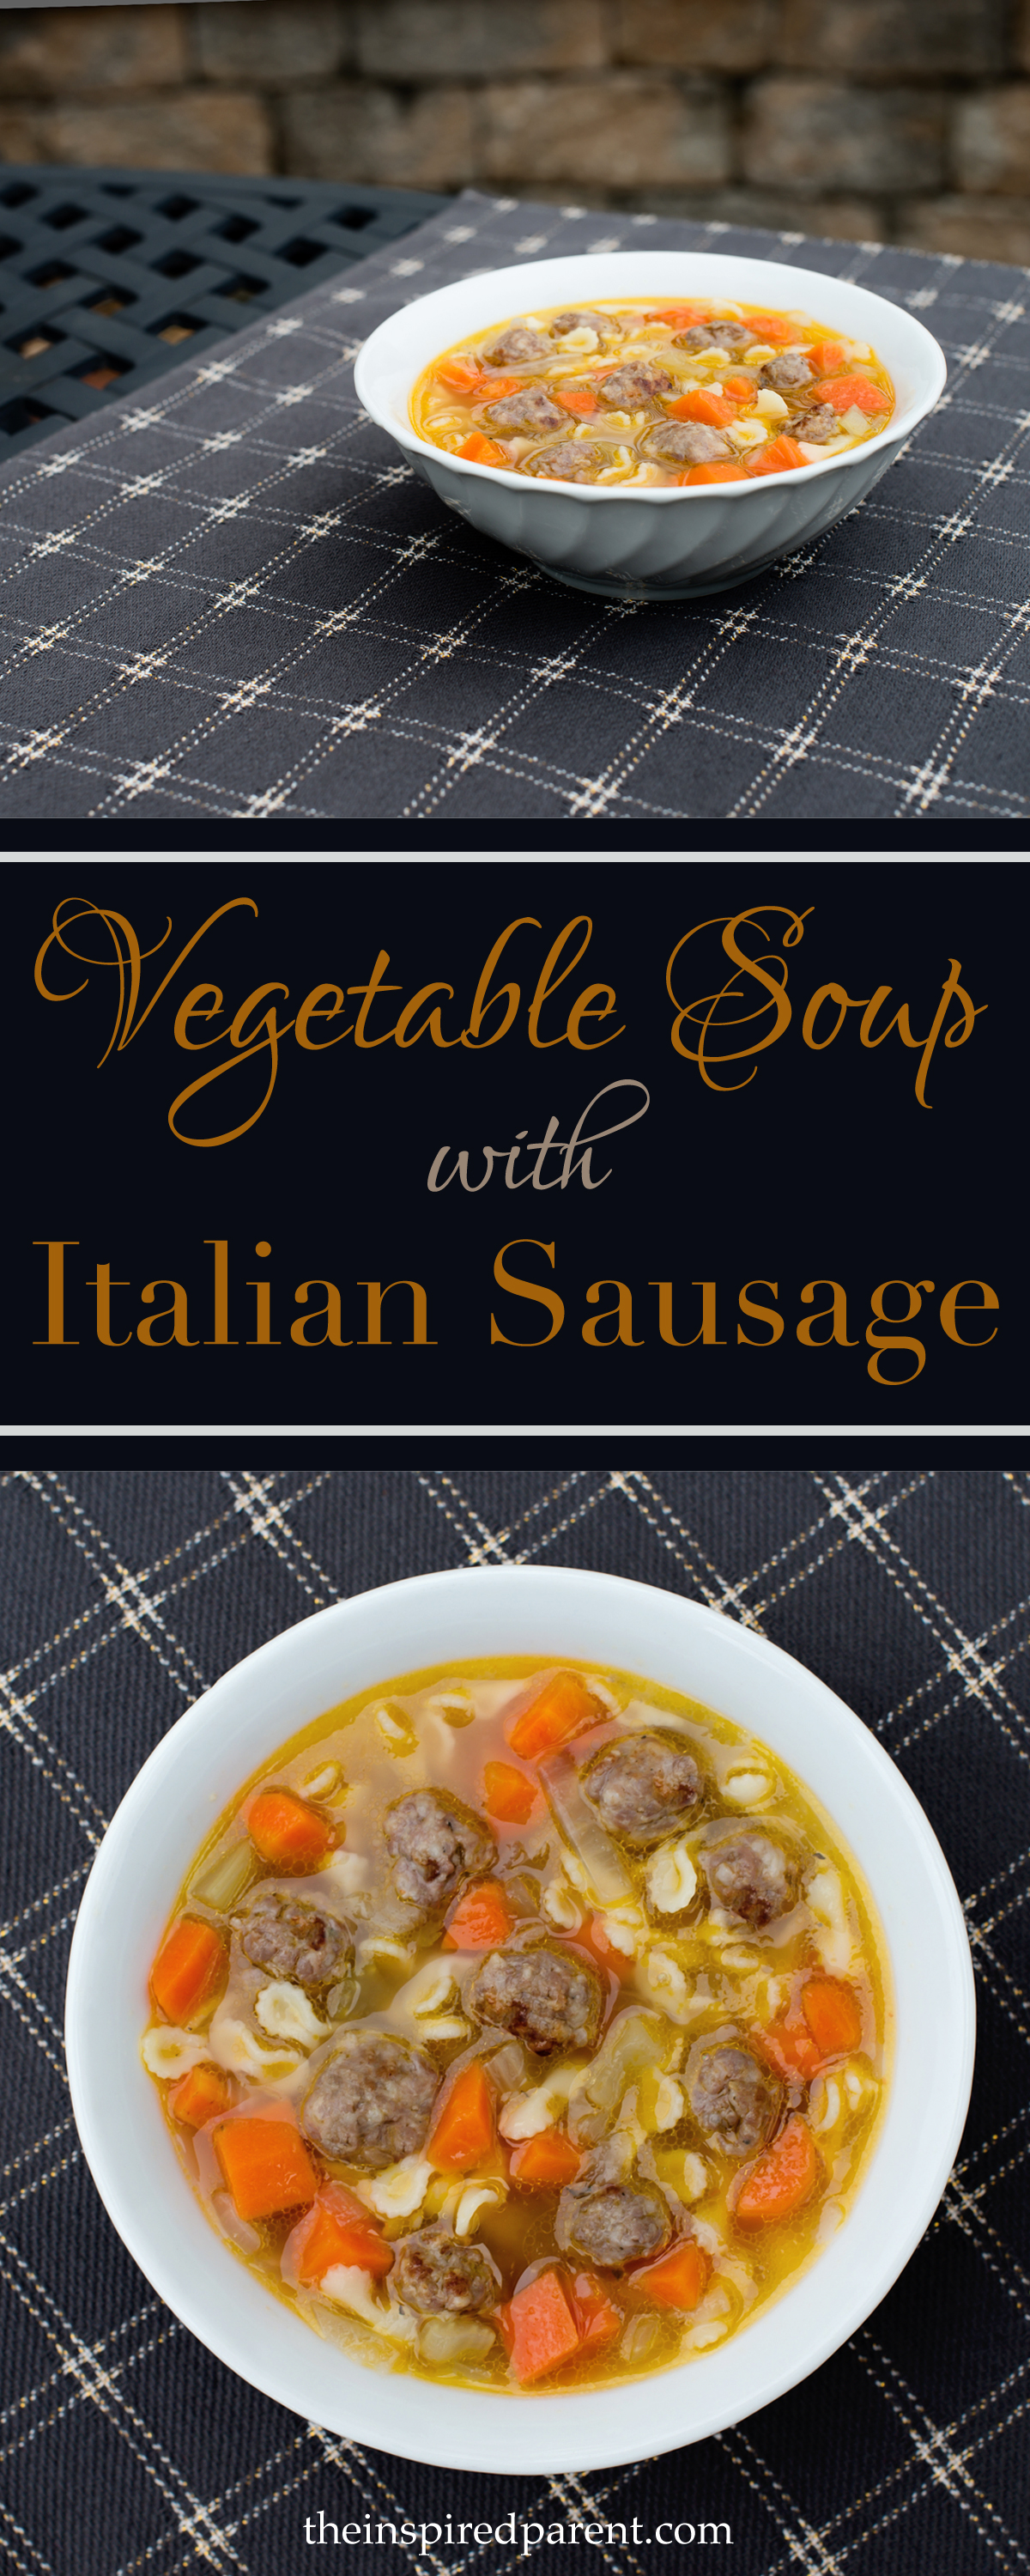 Veggie Soup with Italian Sausage | theinspiredparent.com